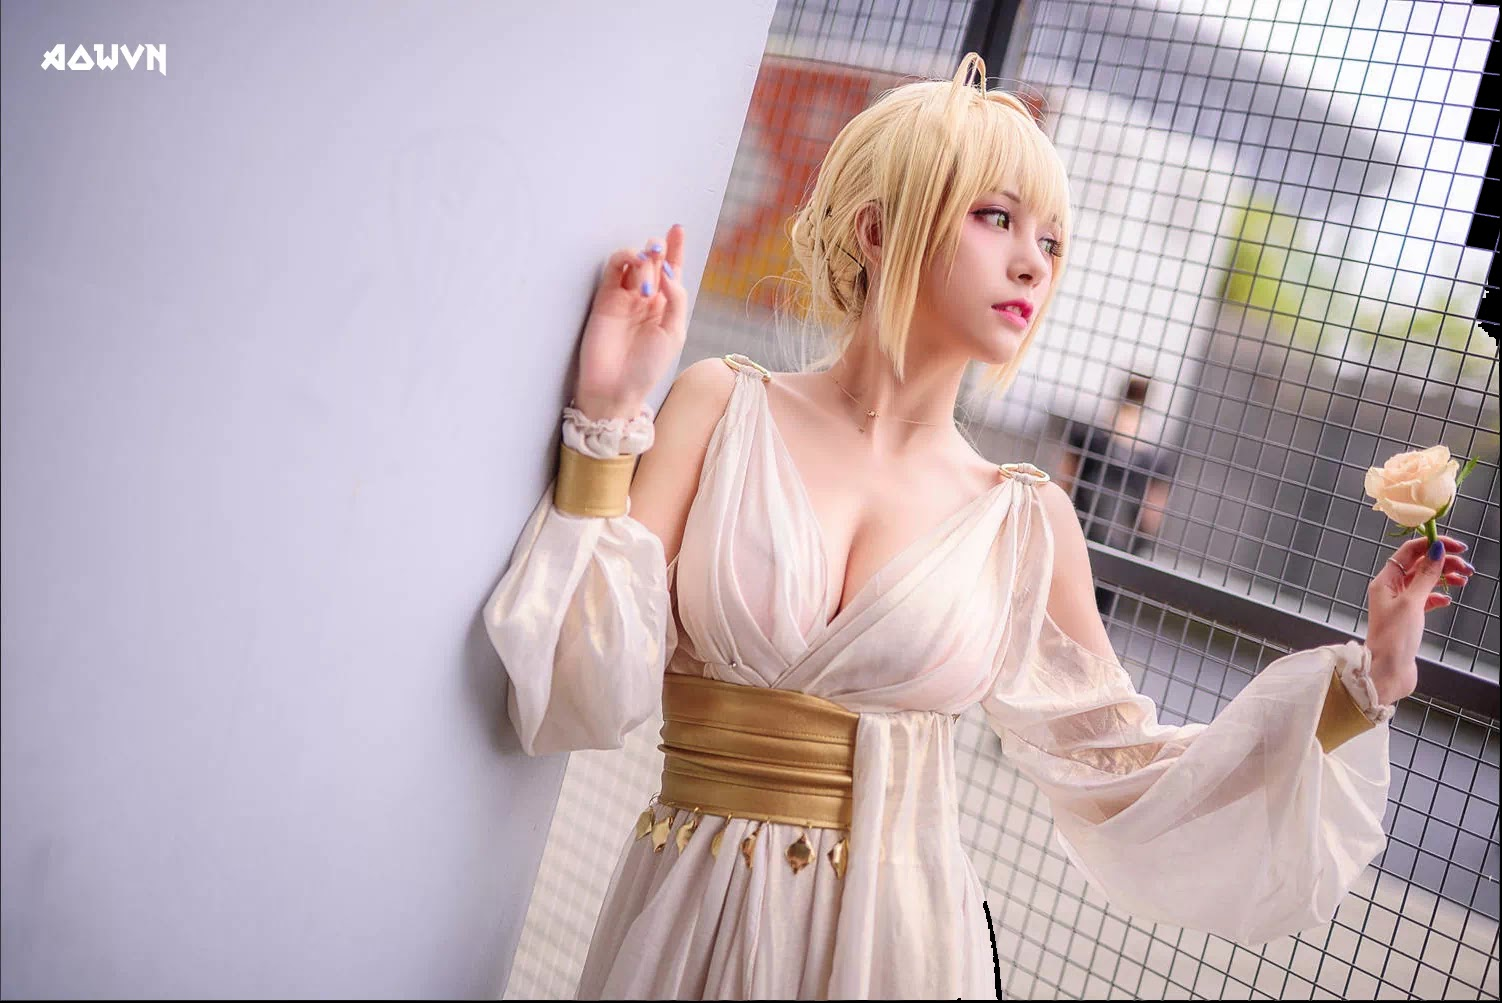 AowVN.org minz%2B%25285%2529 - [ Cosplay ] Nero - Saber anime Fate by Xia Mei Jiang tuyệt đẹp | AowVN Wallpapers